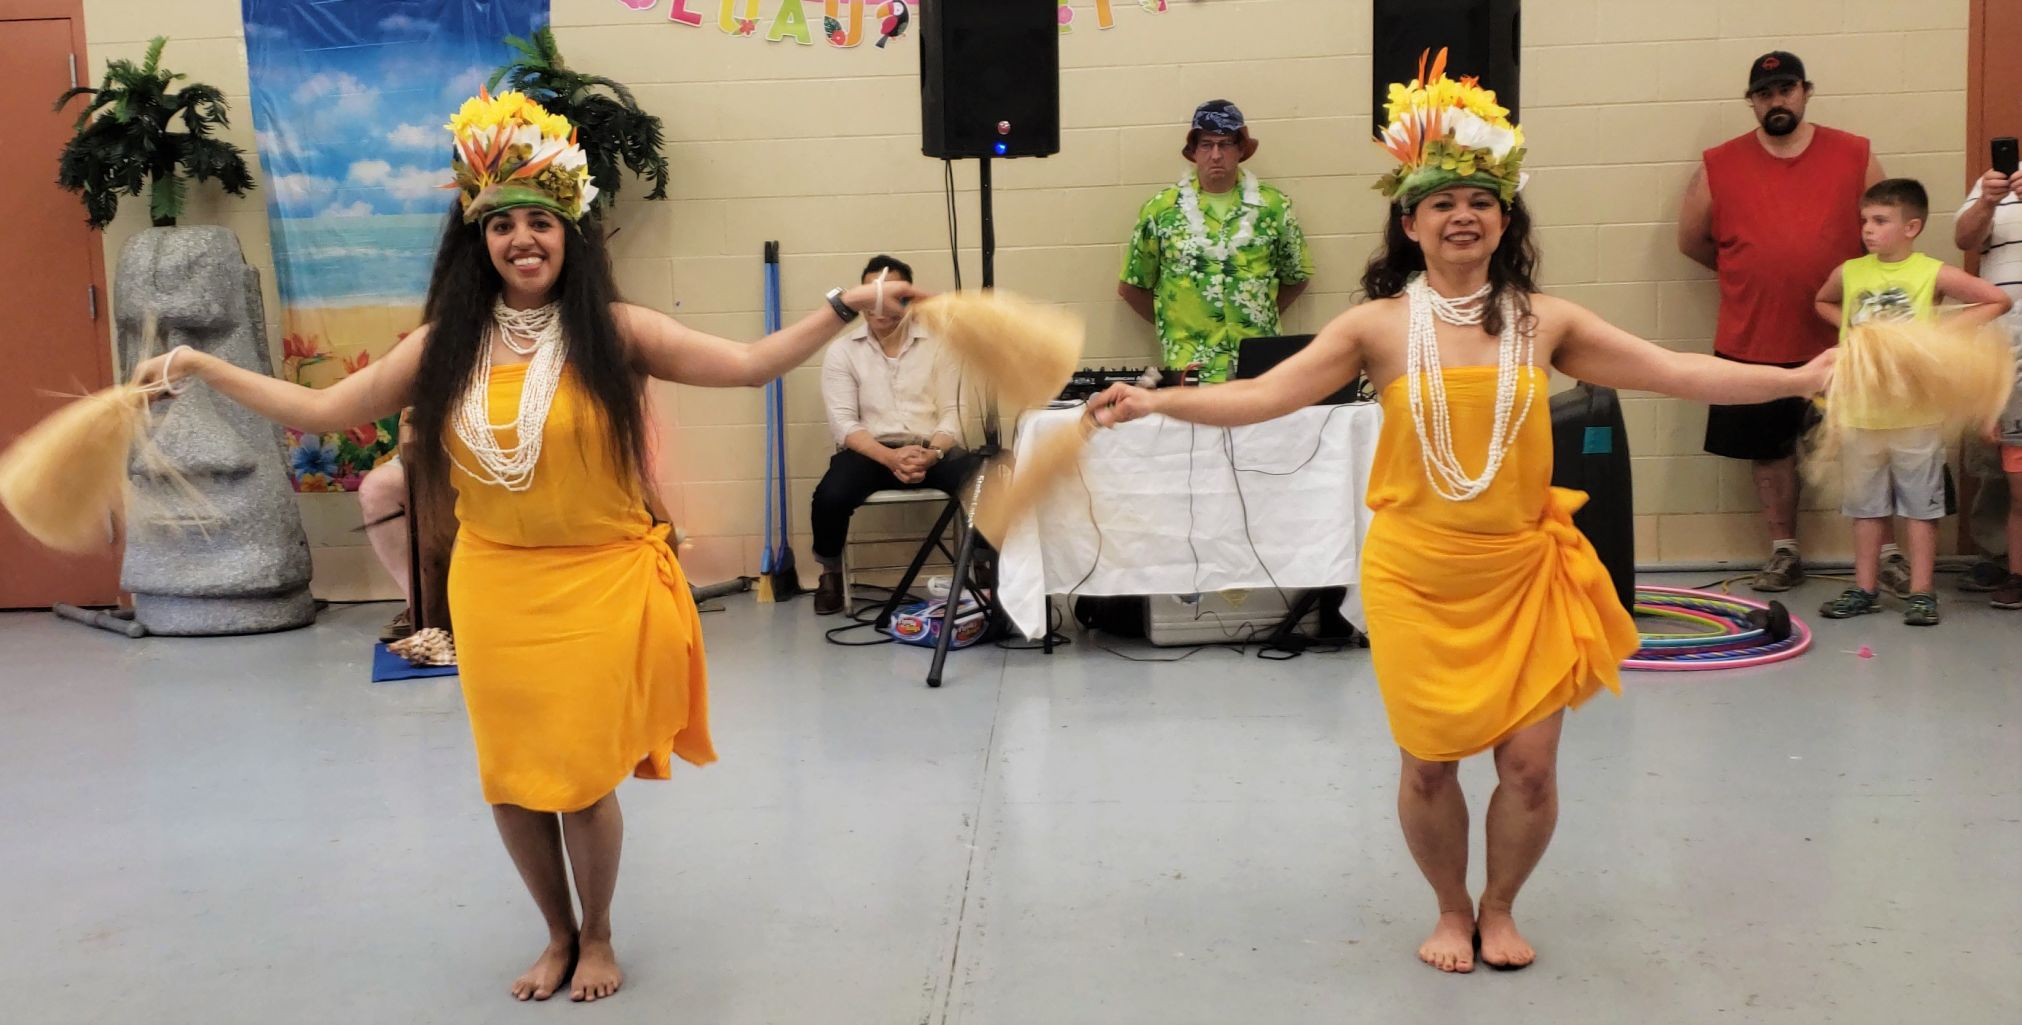 GALLERY: Mansfield Parks & Recreation hosts 'Luau Party' at North Lake Park